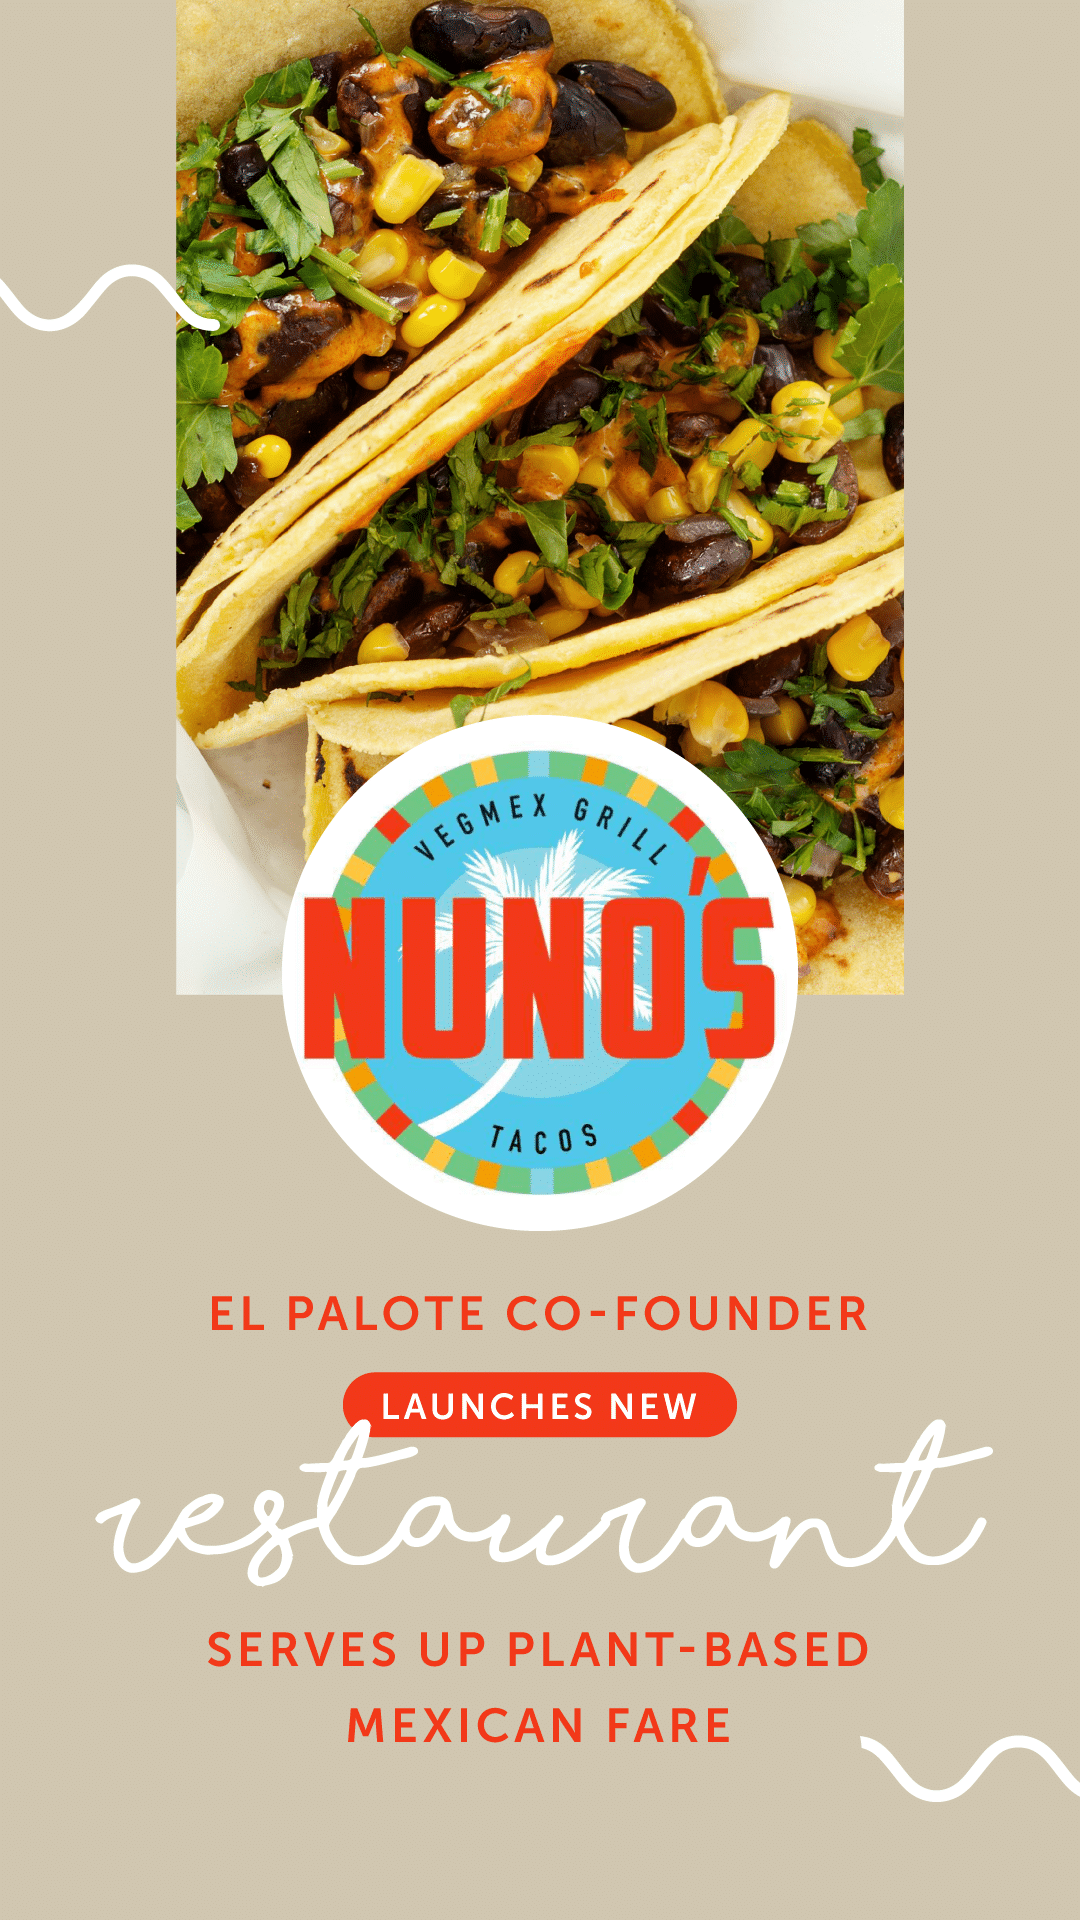 El Palote Co-Founder Launches New Restaurant, Serves Up Plant-Based Mexican Fare